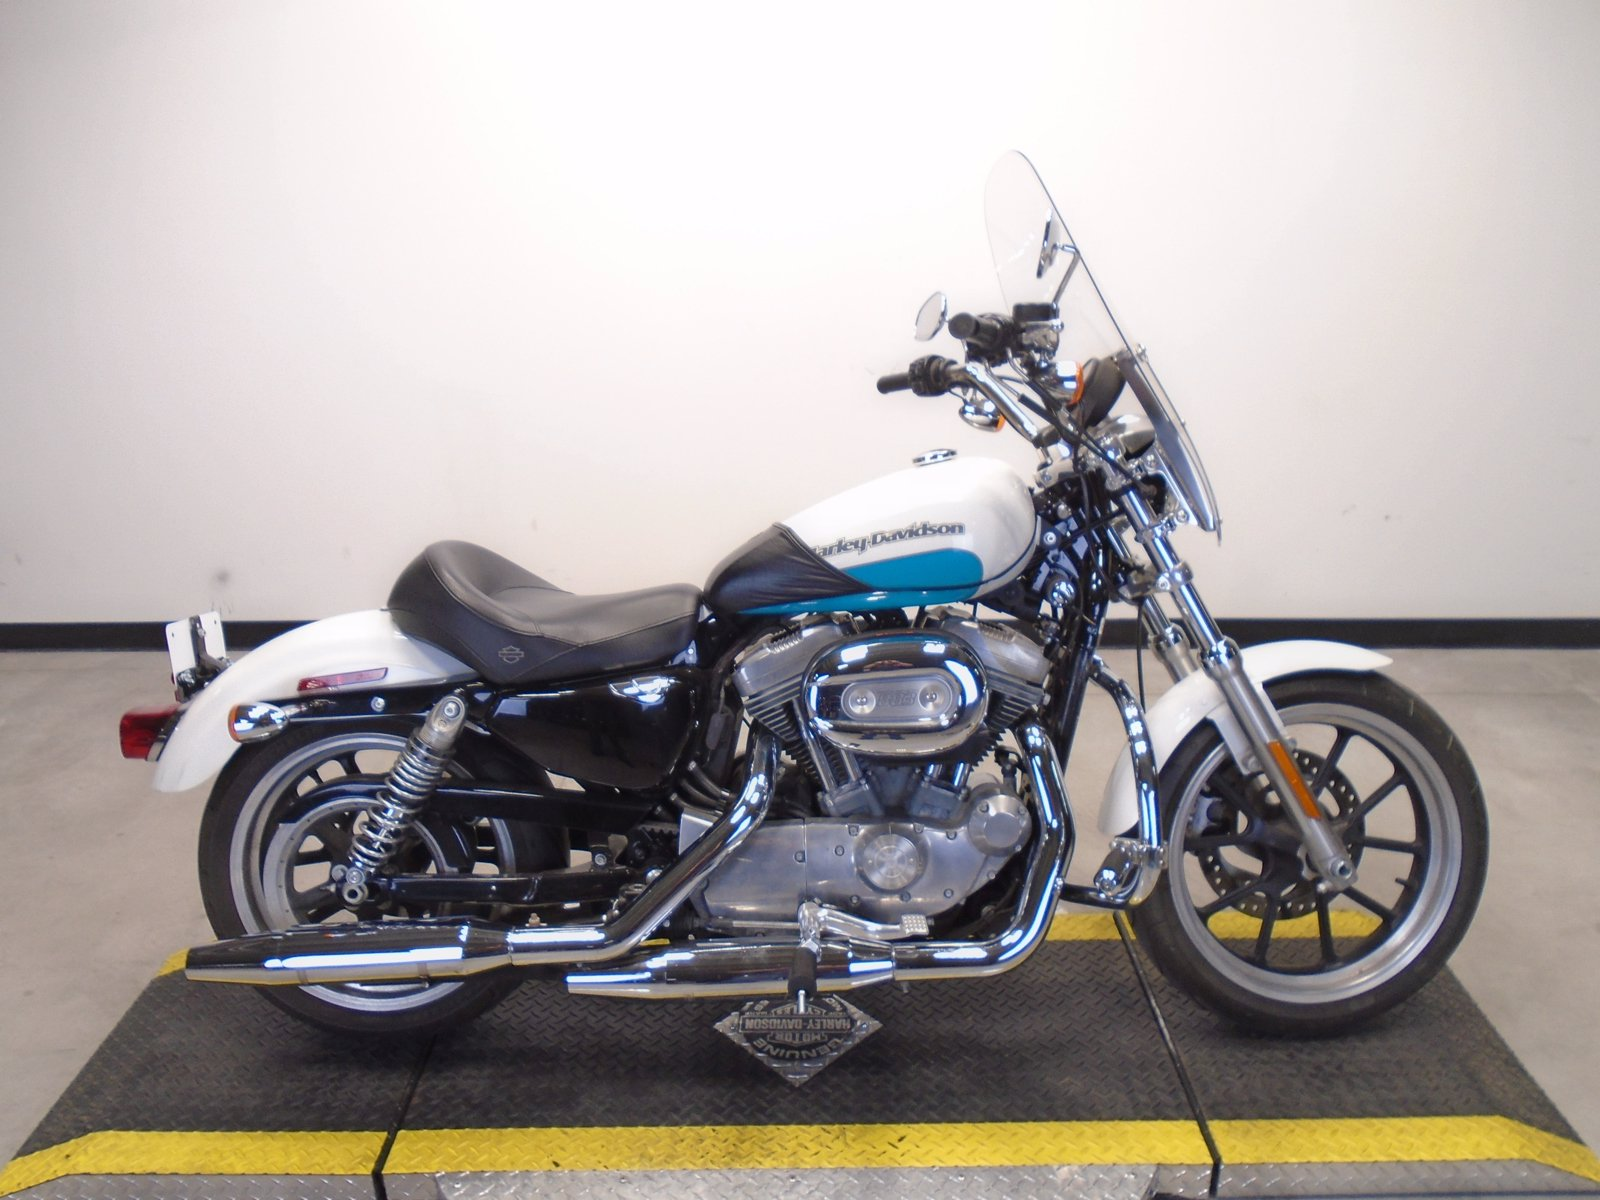 Pre-Owned 2017 Harley-Davidson Sportster 883 Superlow XL883L